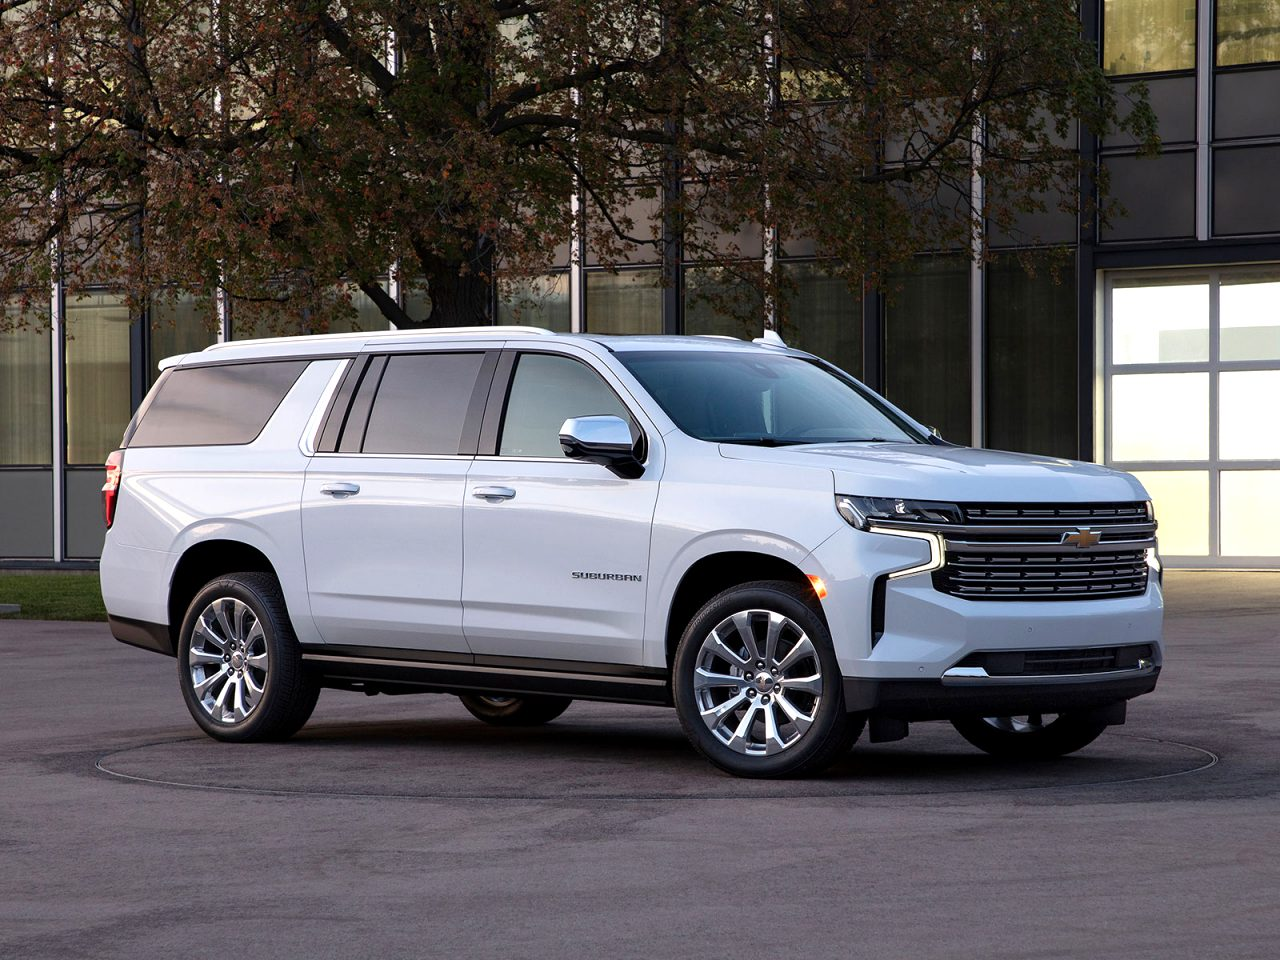 2021 chevrolet suburban Price and Release date